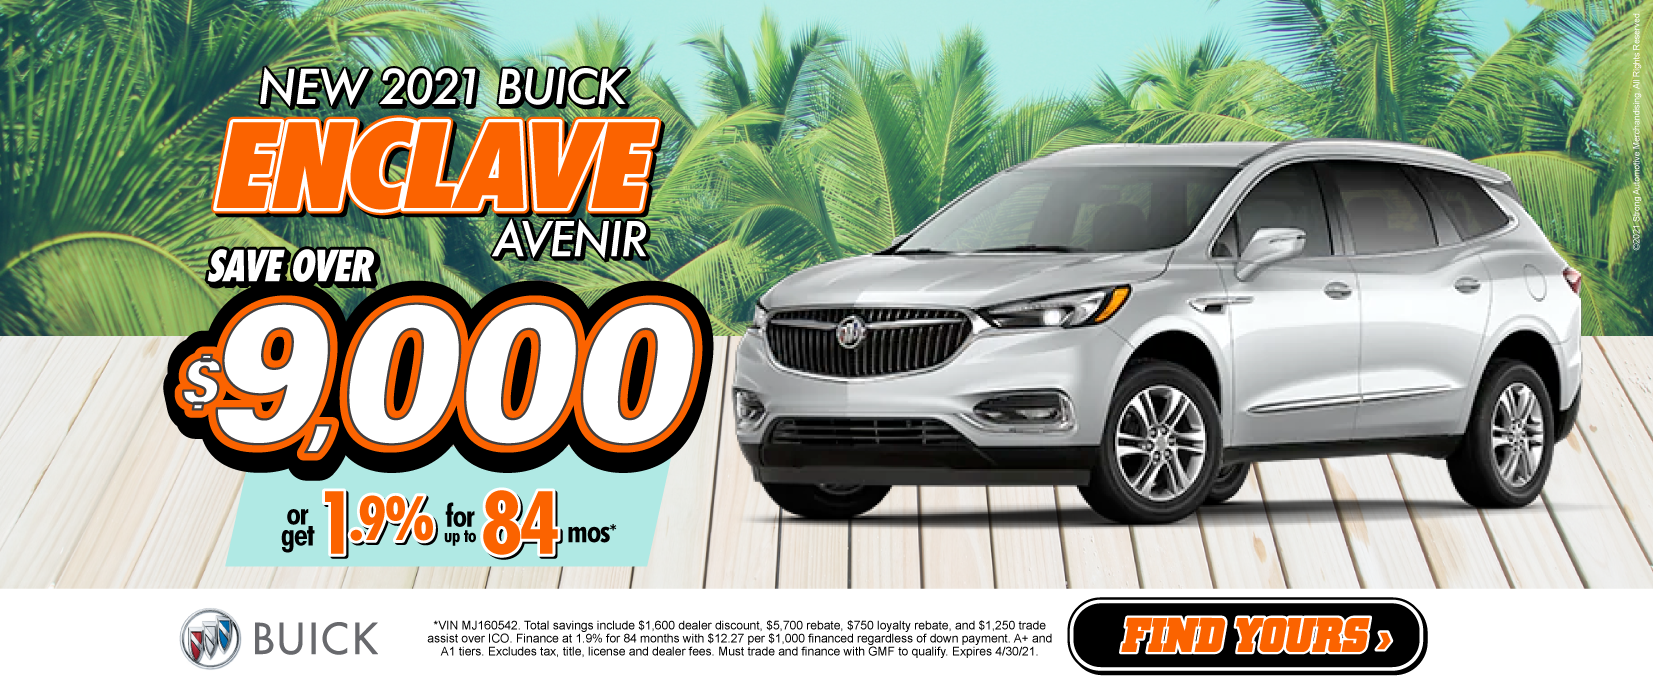 New 2021 Buick Enclave Save over $9,000